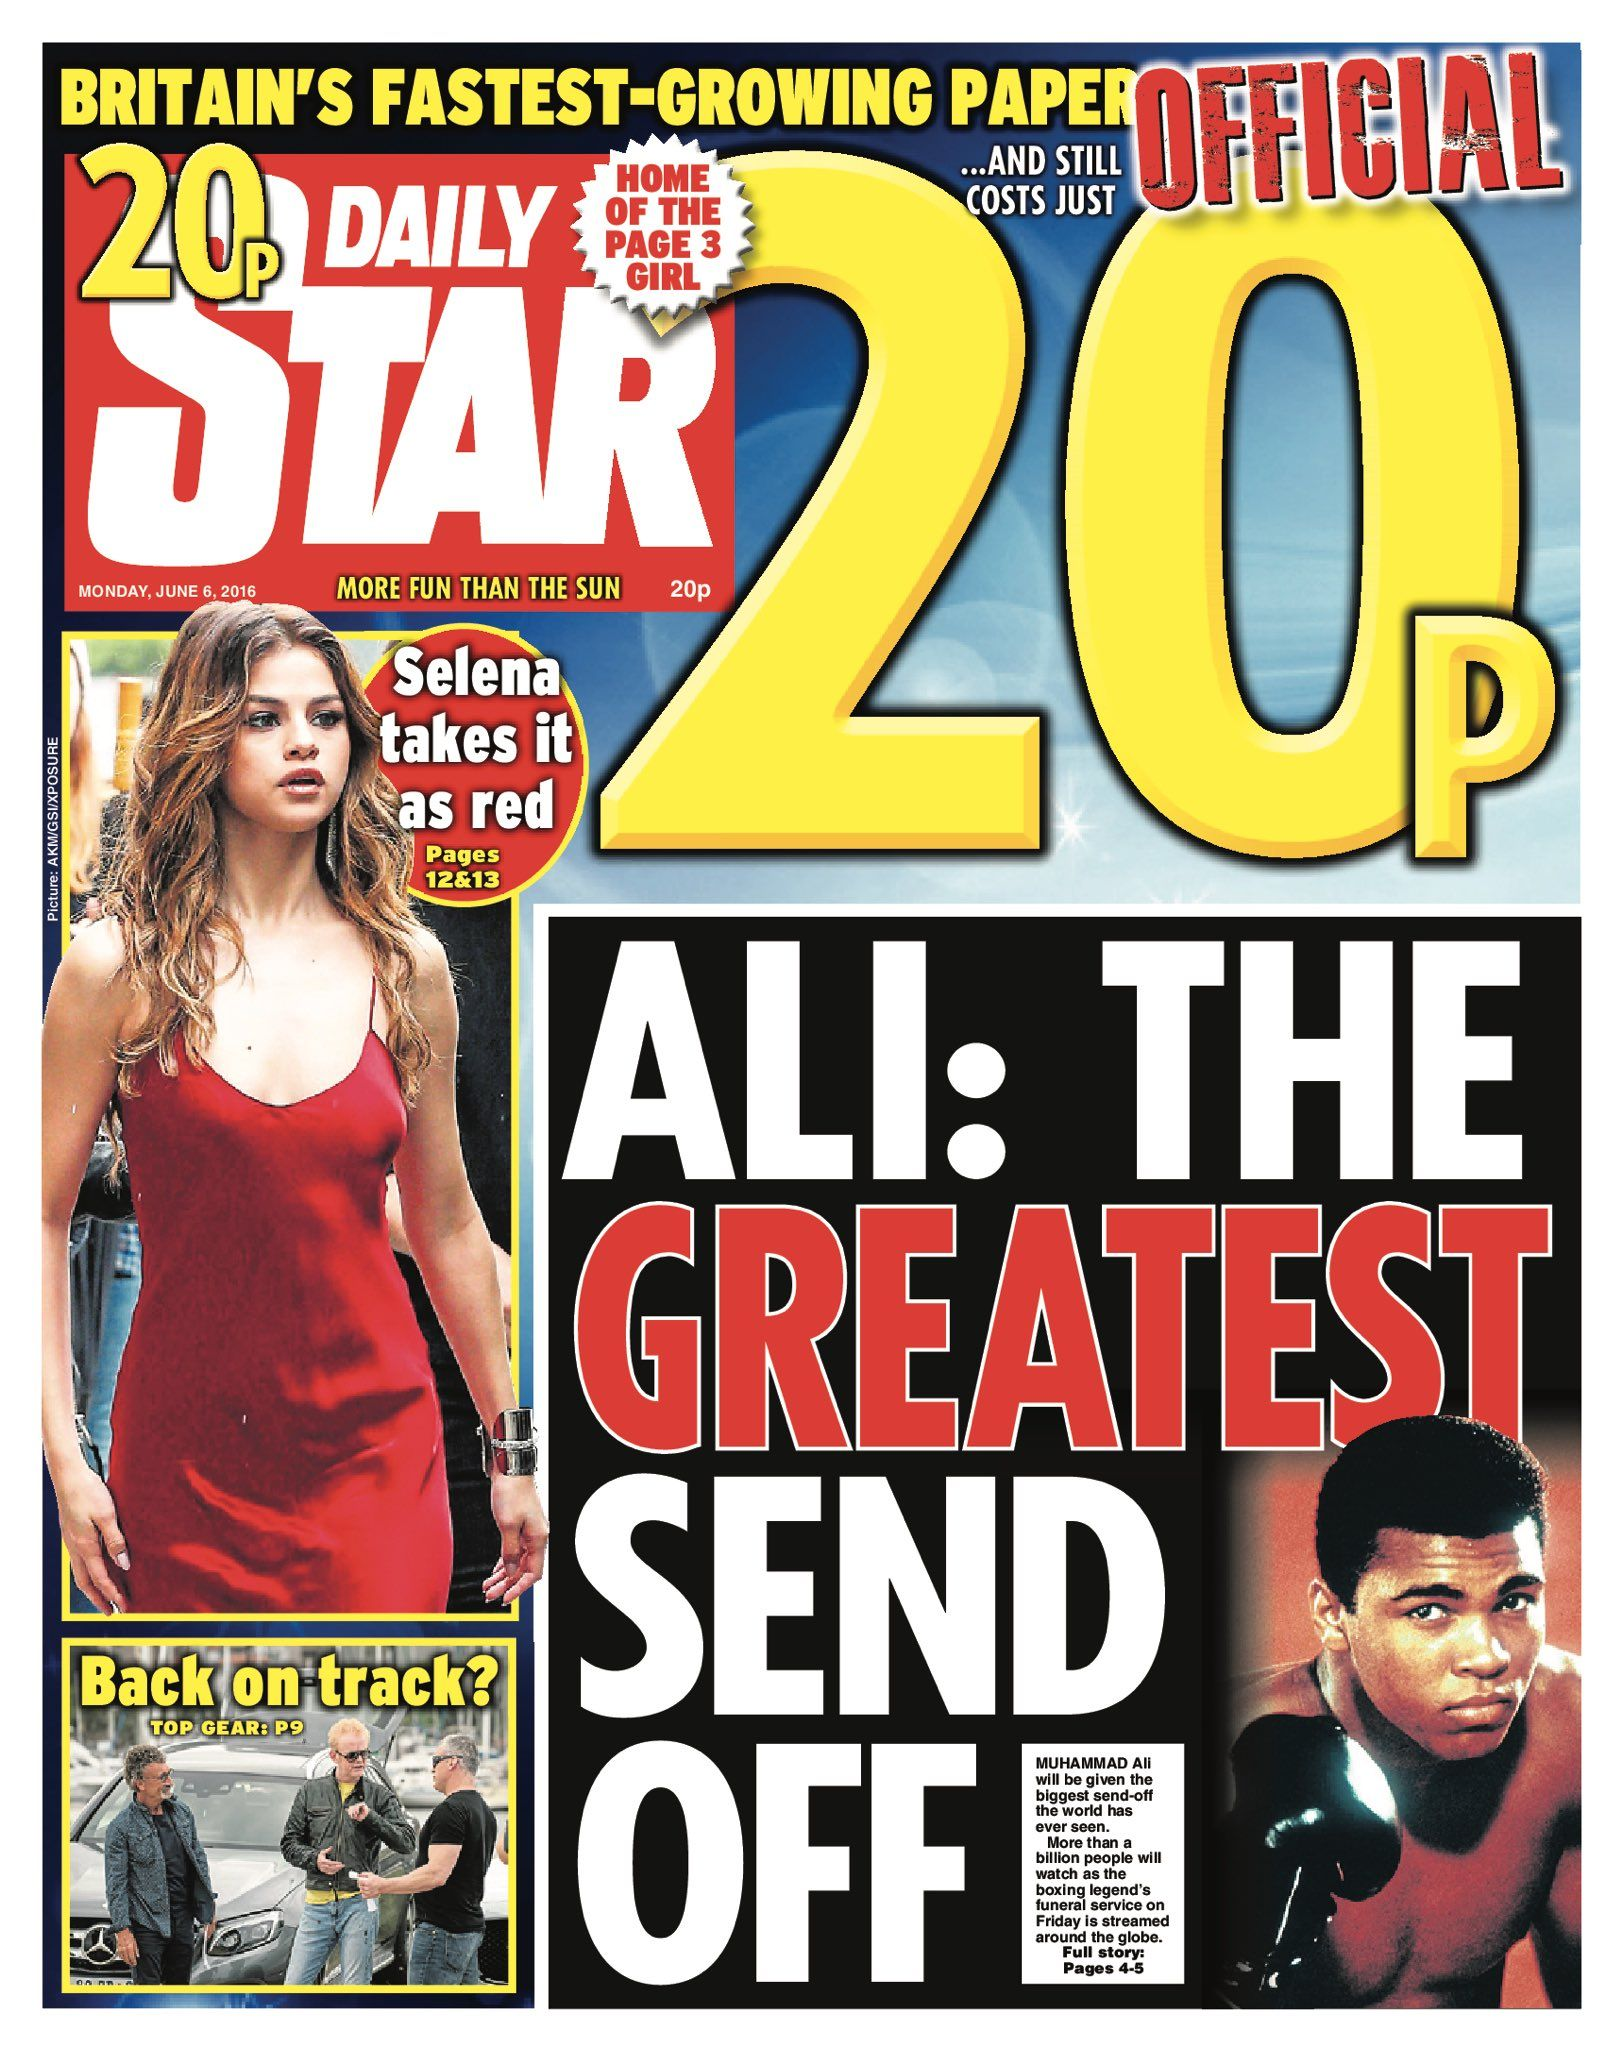 Monday's Daily Star front page - Ali: the greatest send off #tomorrowspaperstoday #bbcpapers https://t.co/uh7h3TNjLk